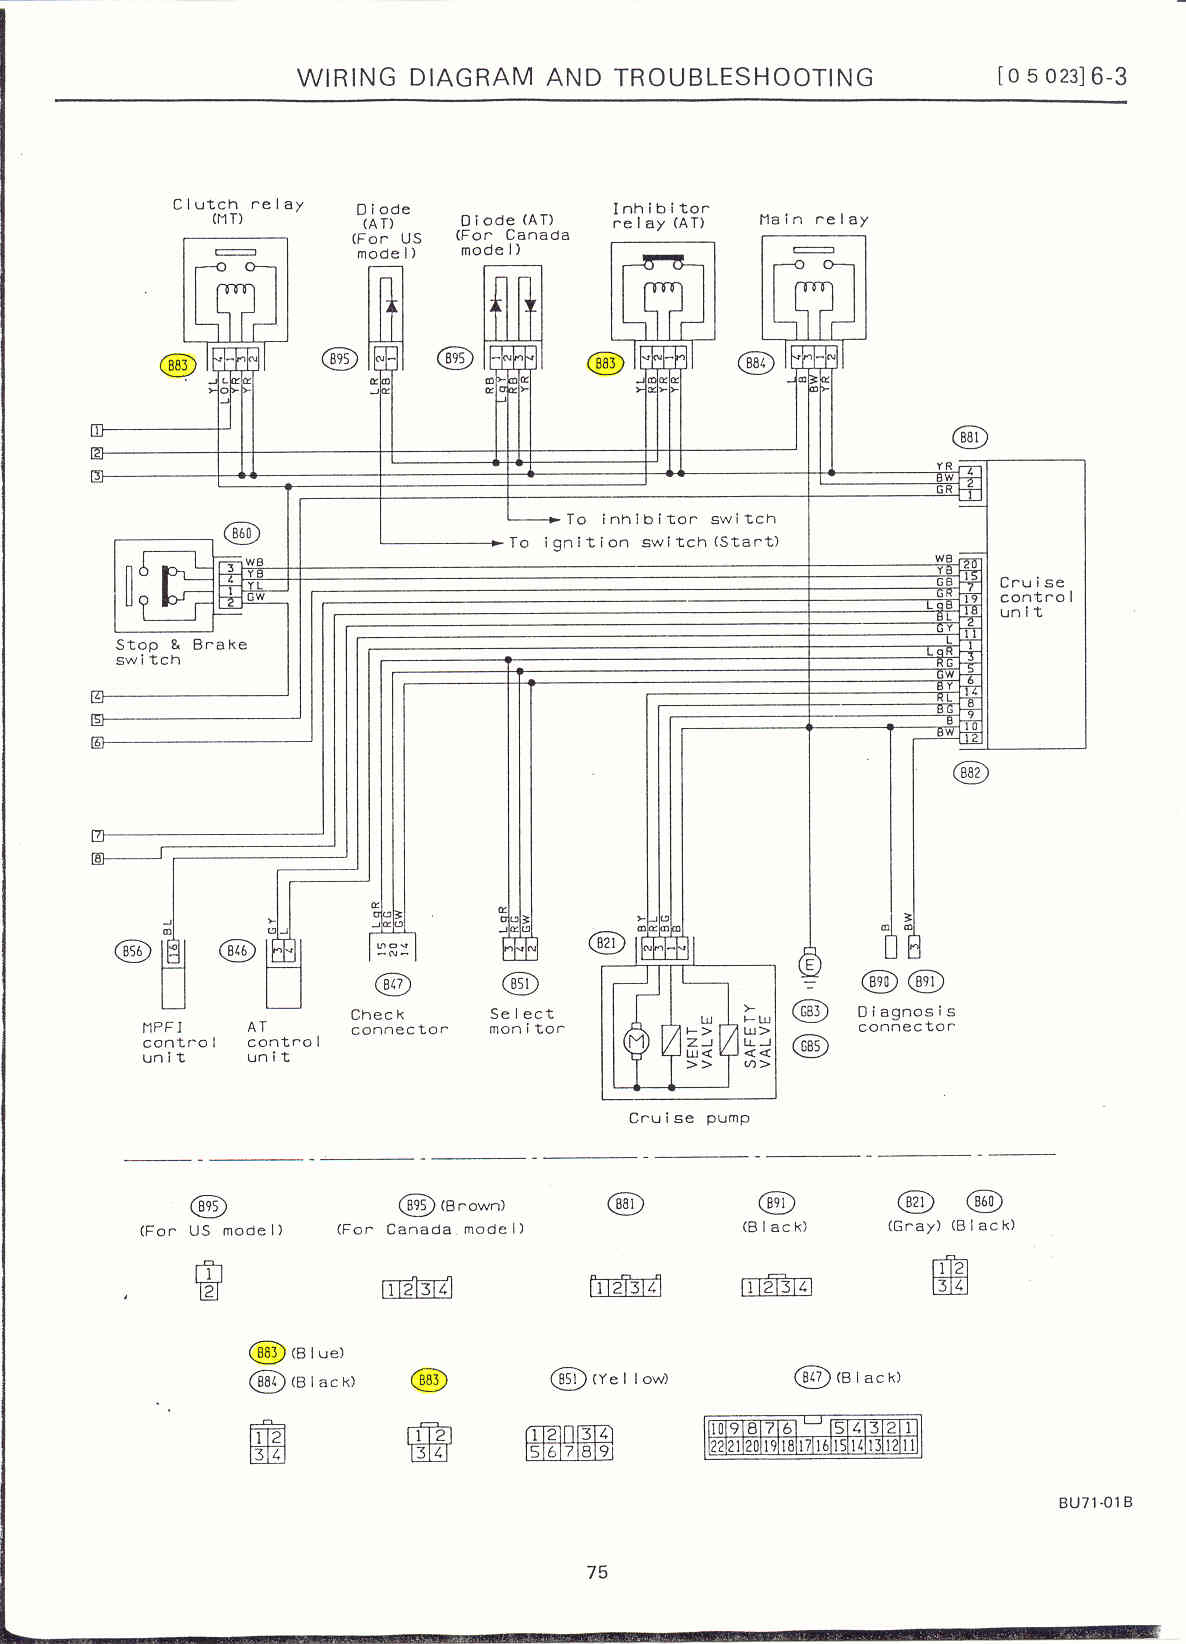 6 3_cruise_control2 sti wiring diagram readingrat net 1997 subaru impreza radio wiring diagram at honlapkeszites.co